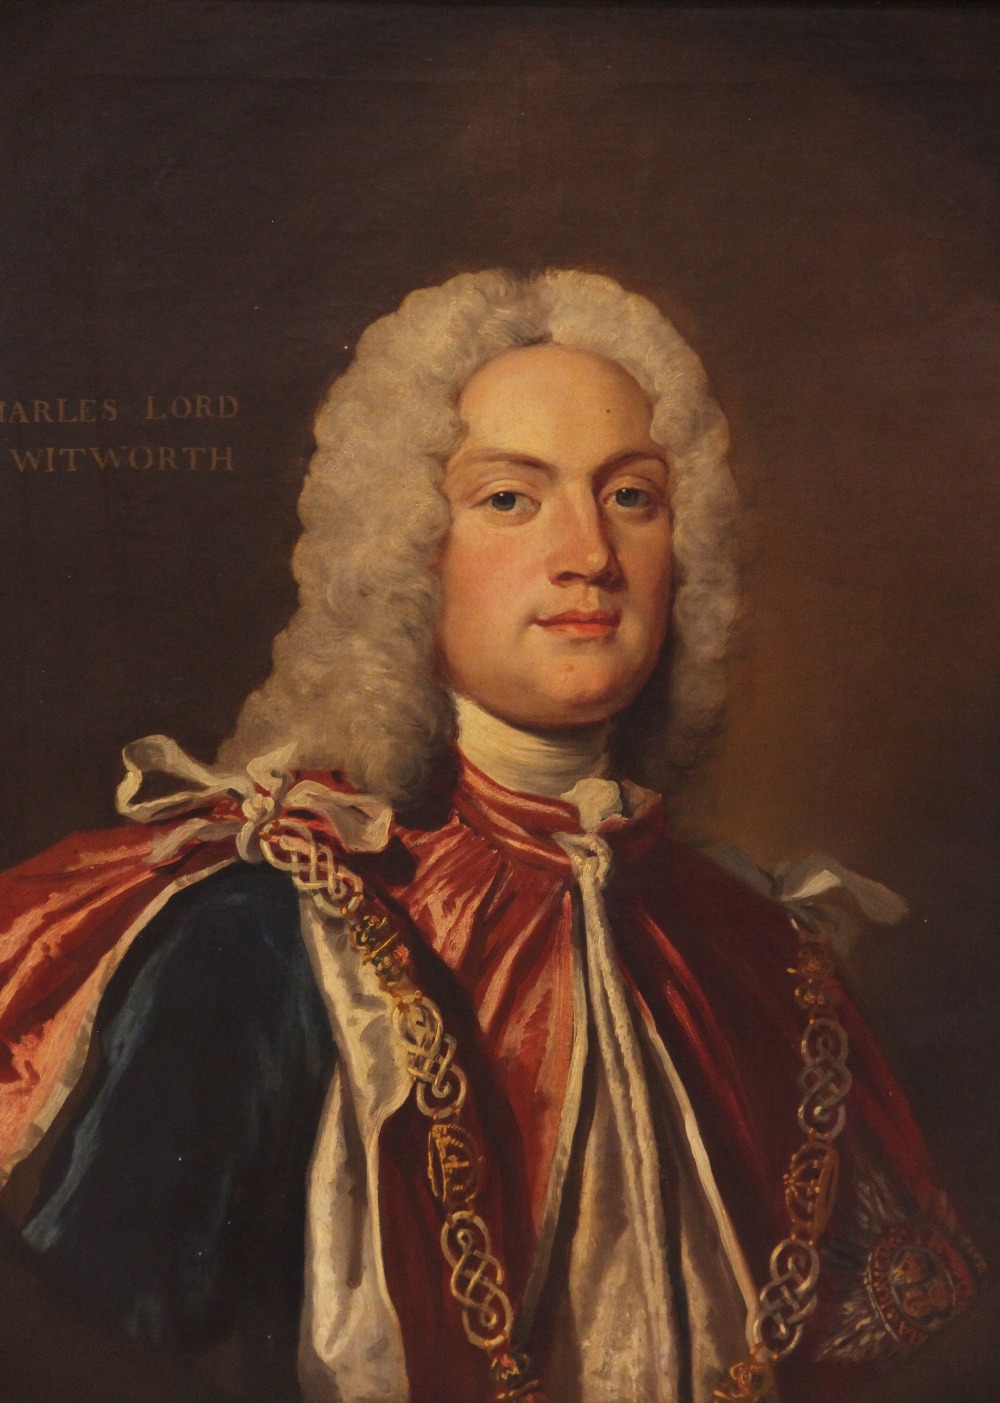 English school, early 18th century, Portrait of Charles Lord Witworth, Head and shoulders wearing